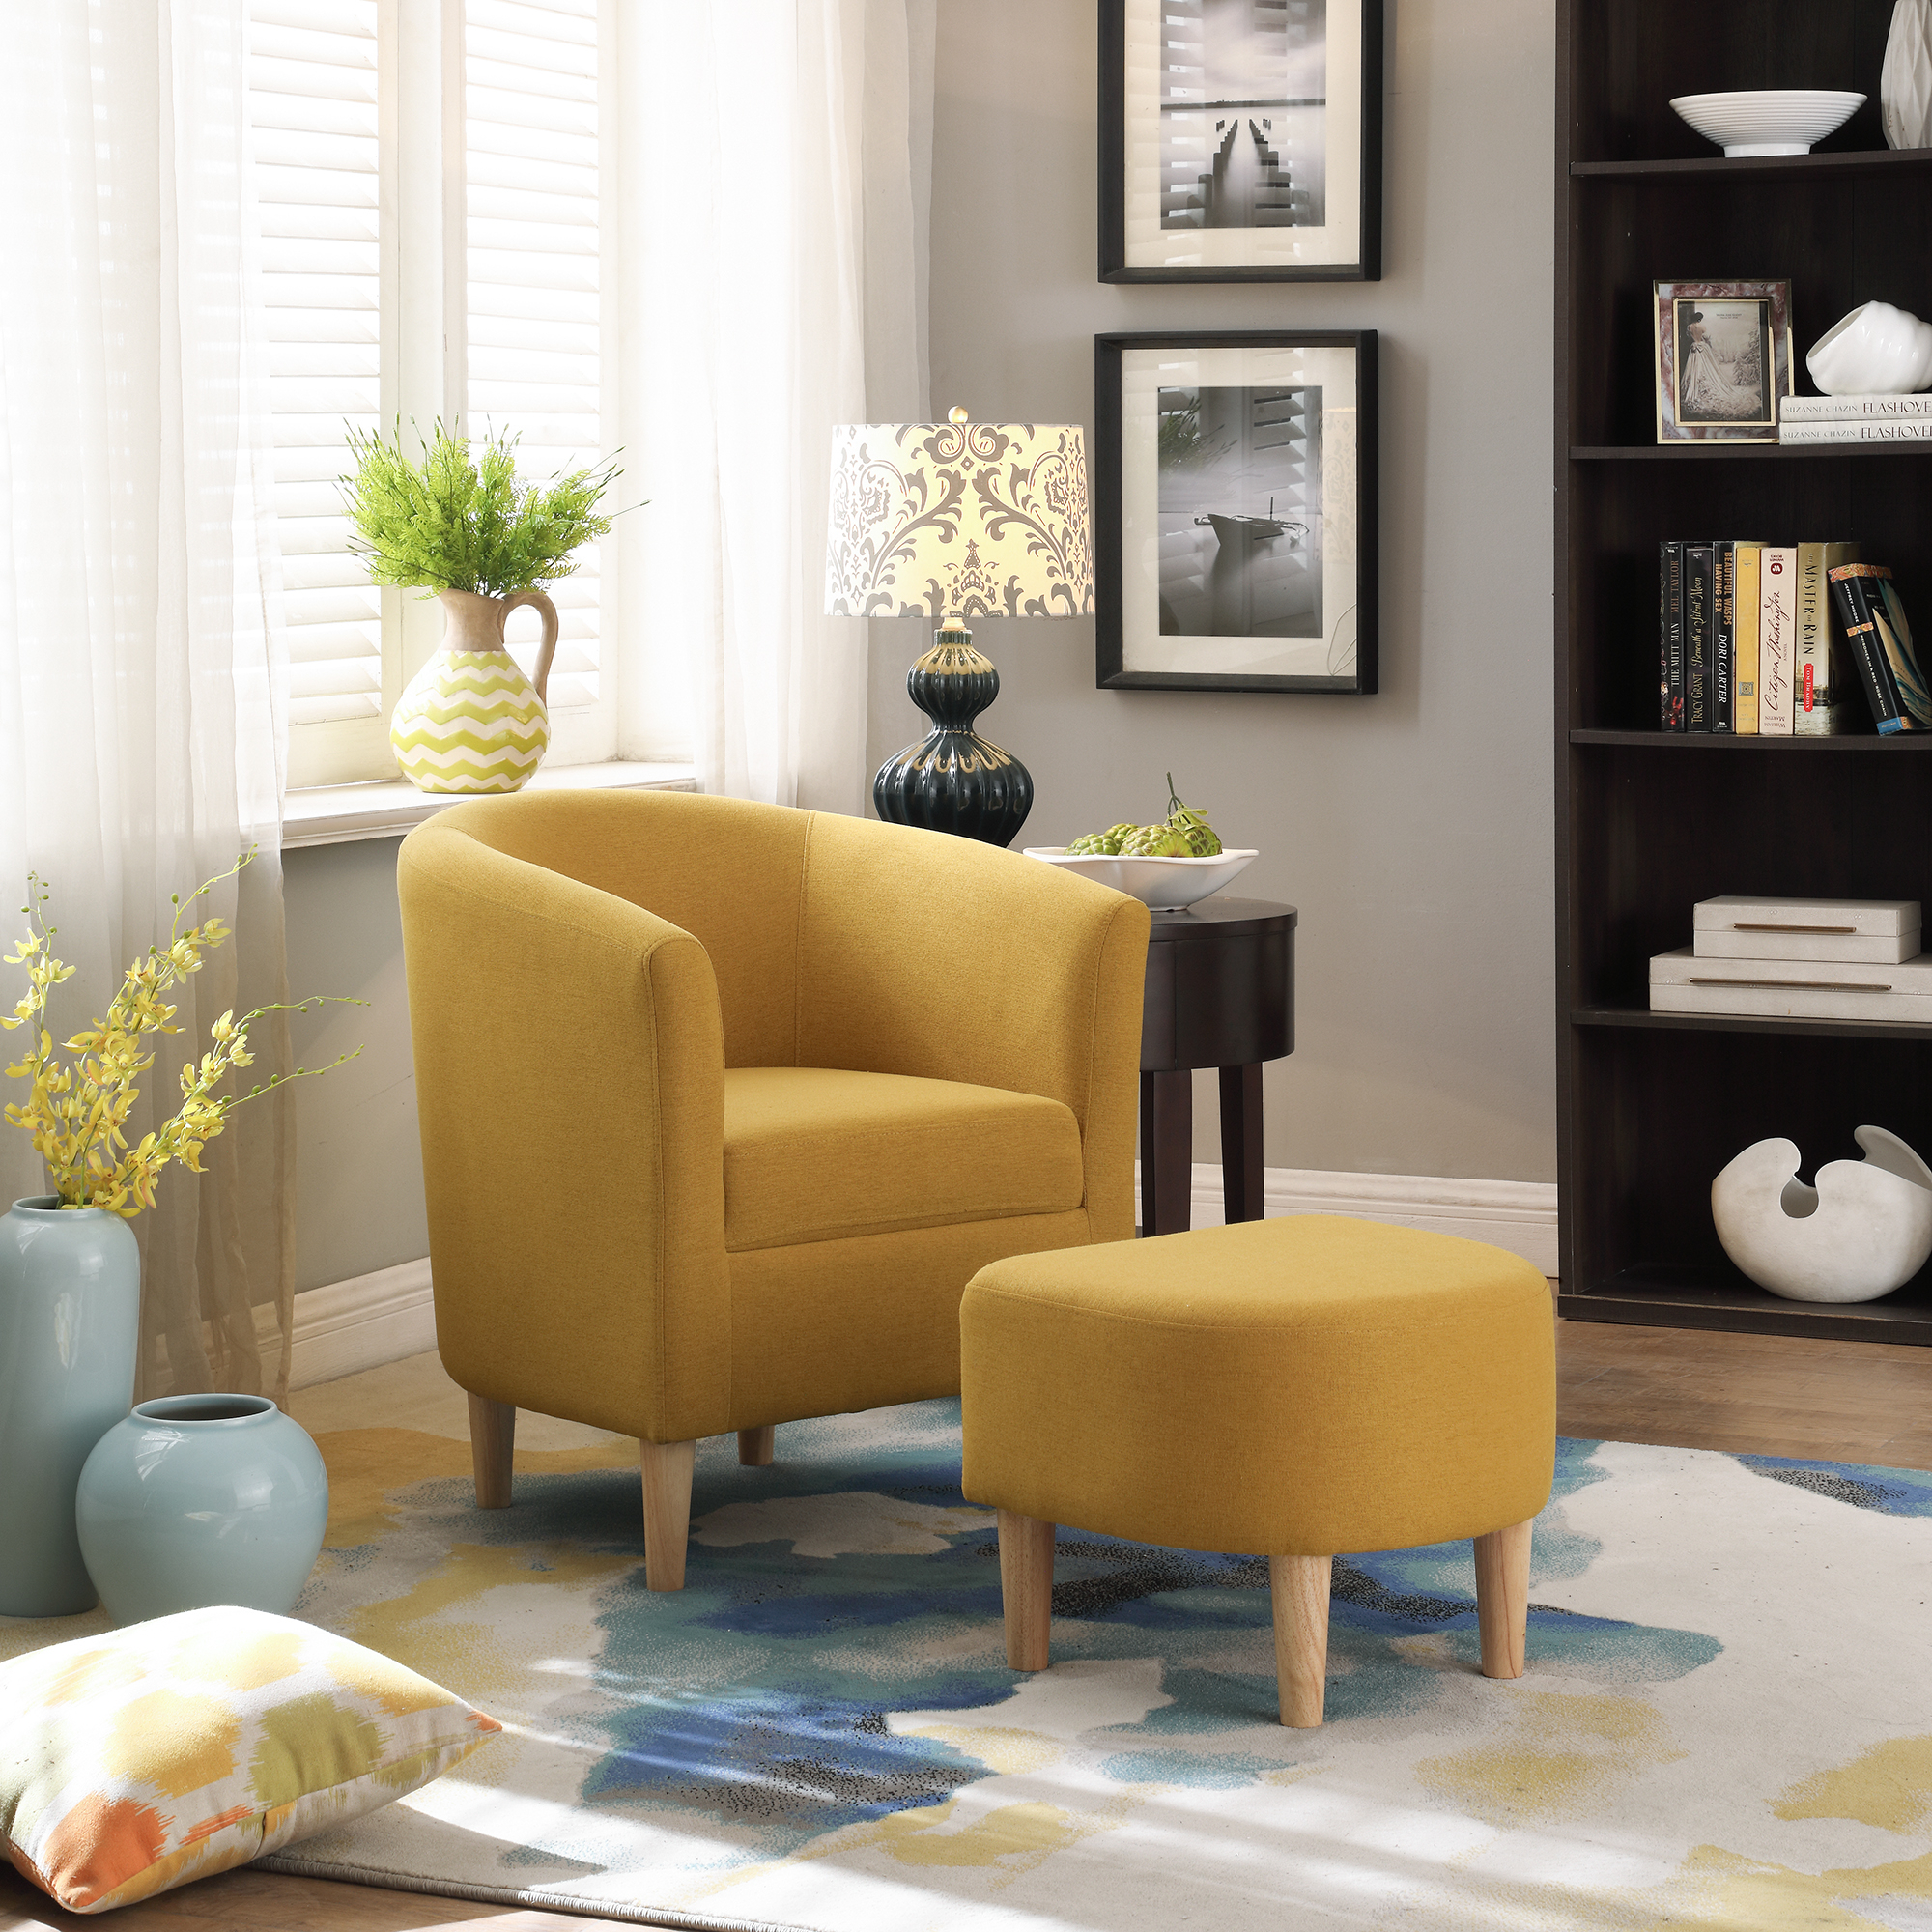 Modern Accent Arm Chair Upholstered Chair Fabric Single Sofa + Ottoman Foot Rest Yellow – Walmart Inside Modern Armchairs And Ottoman (View 11 of 15)